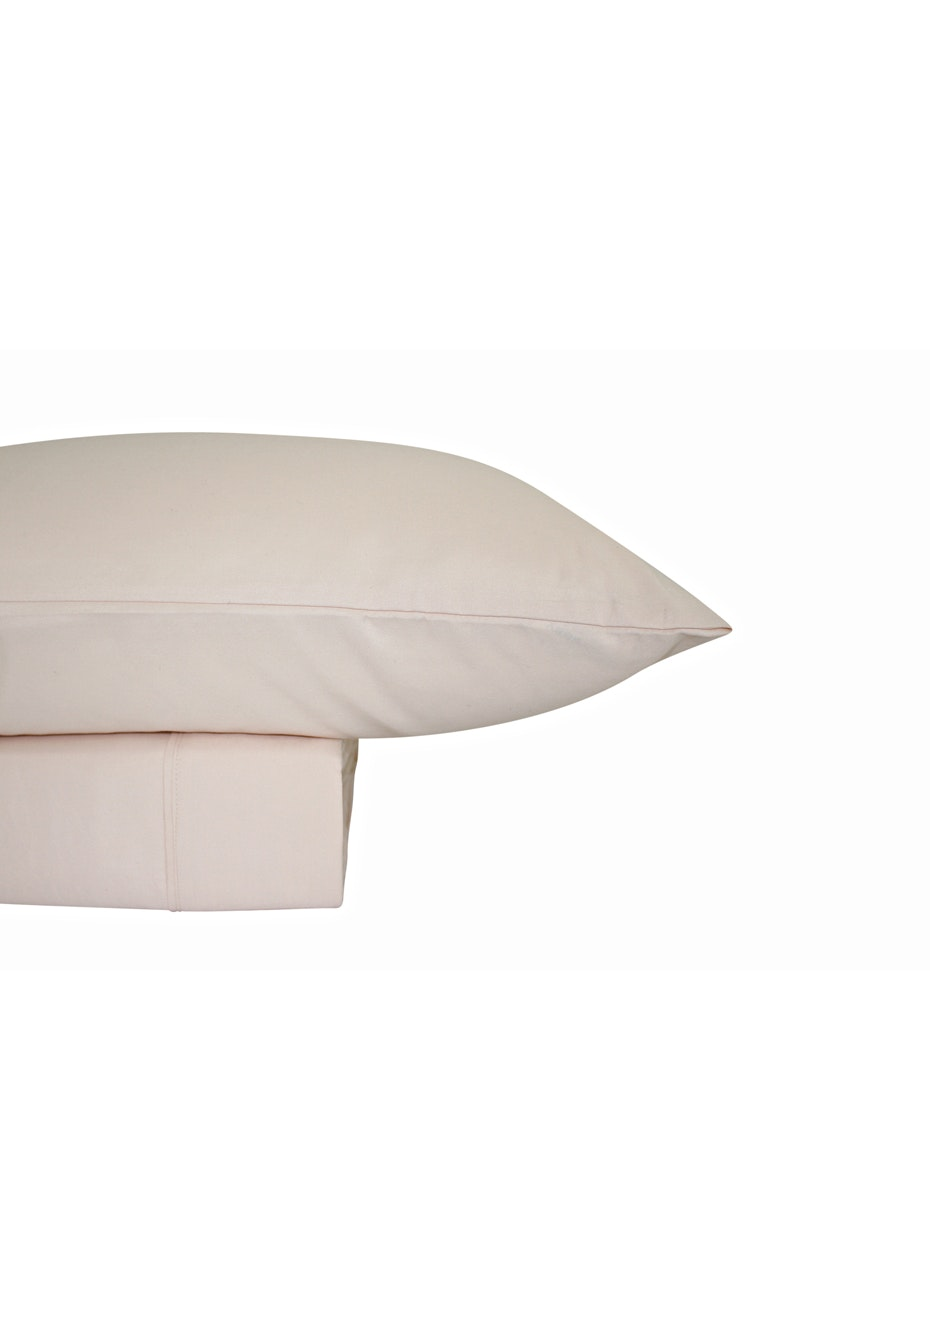 Thermal Flannel Sheet Sets - Sand - Queen Bed